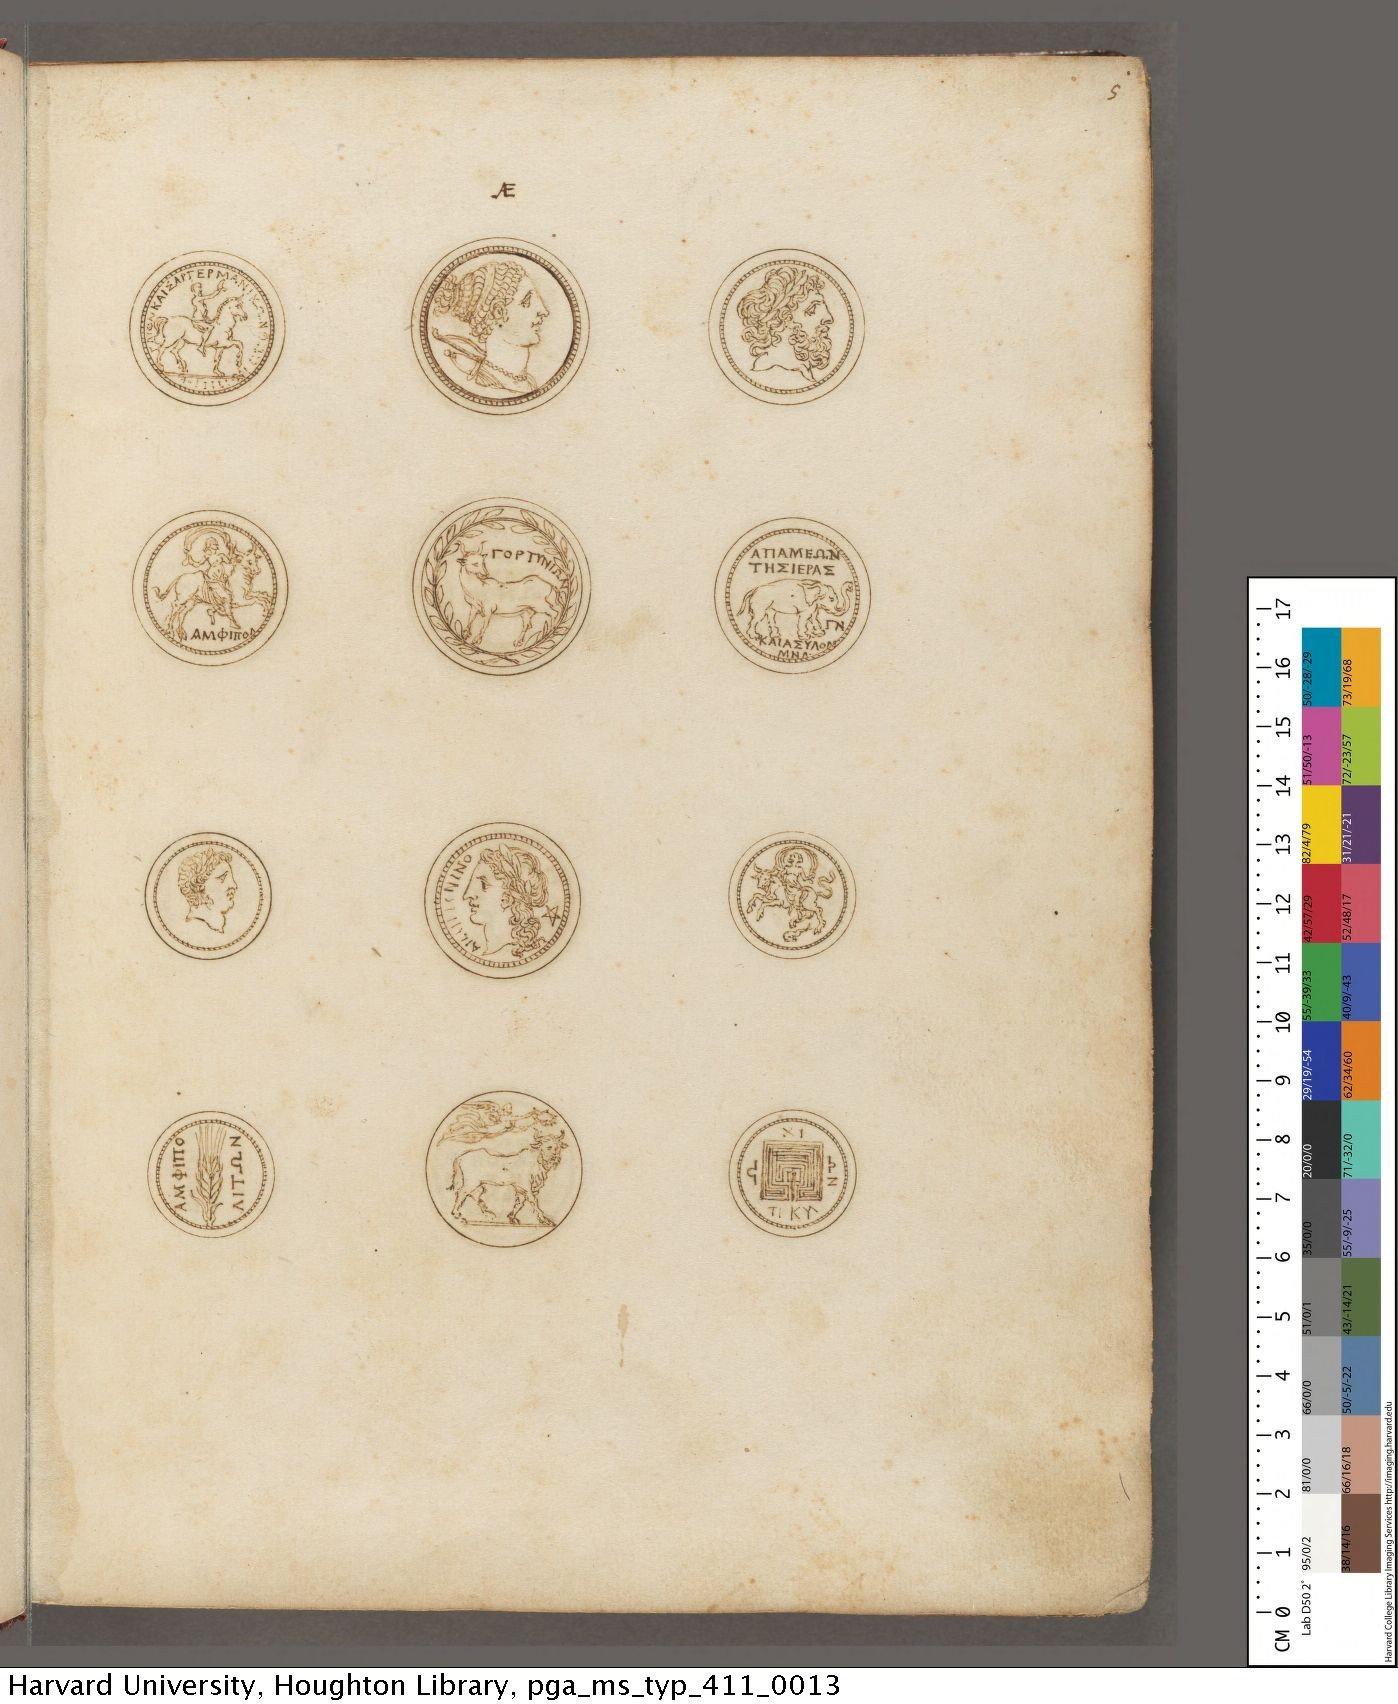 Strada, Jacobus, d. 1588. Illustrations of Graeco-Roman coins. MS Typ 411